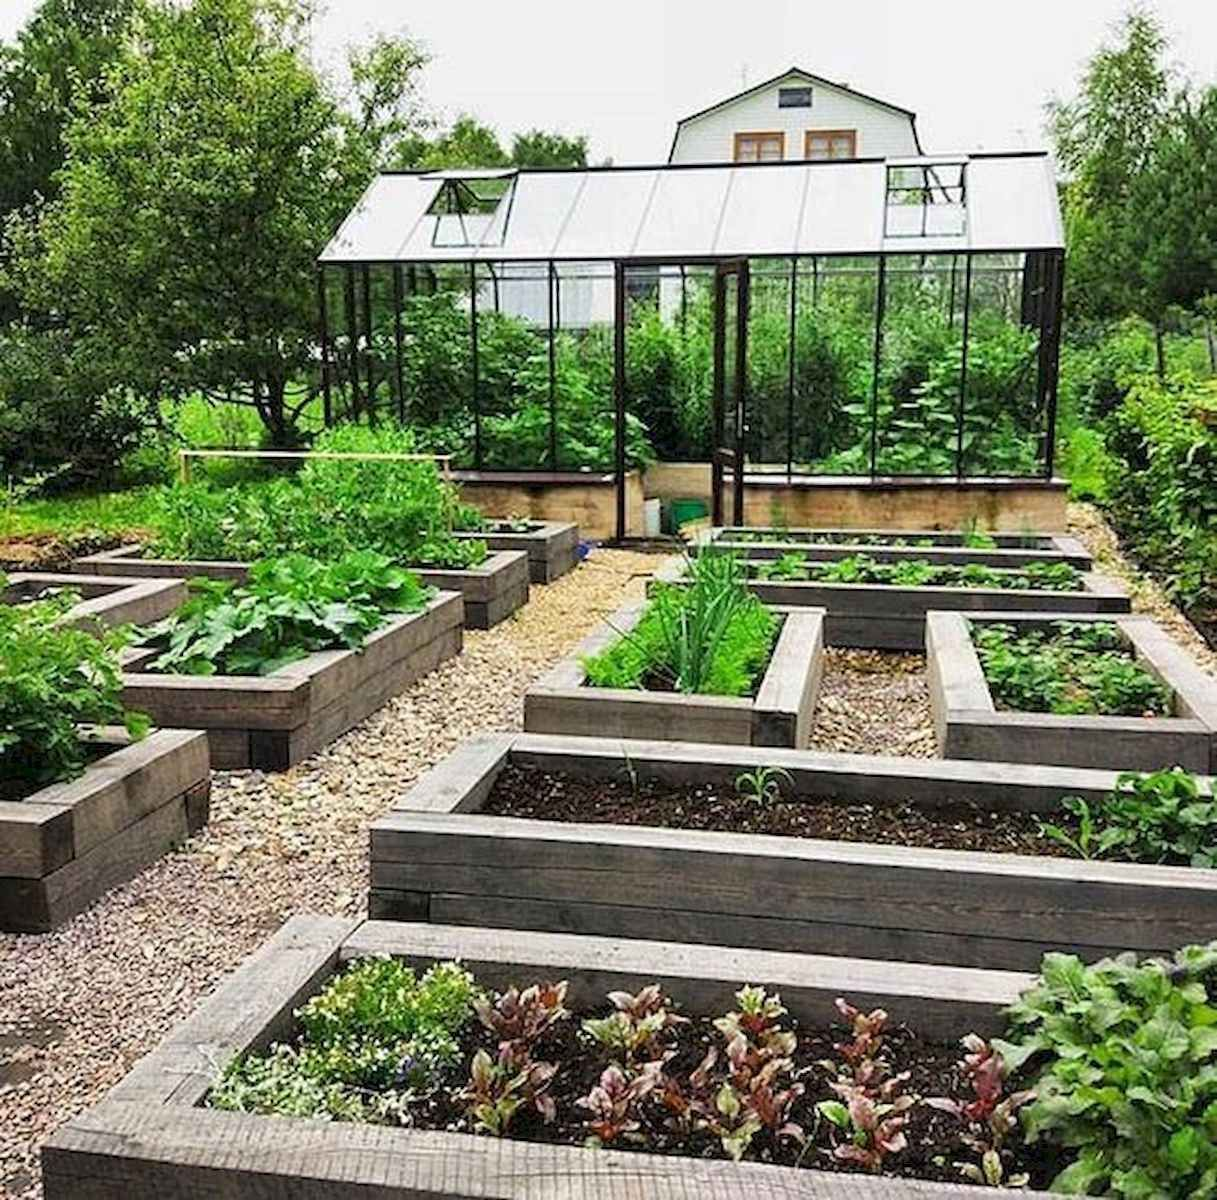 50 Best Garden Beds Design Ideas For Summer -   13 garden design House grass ideas